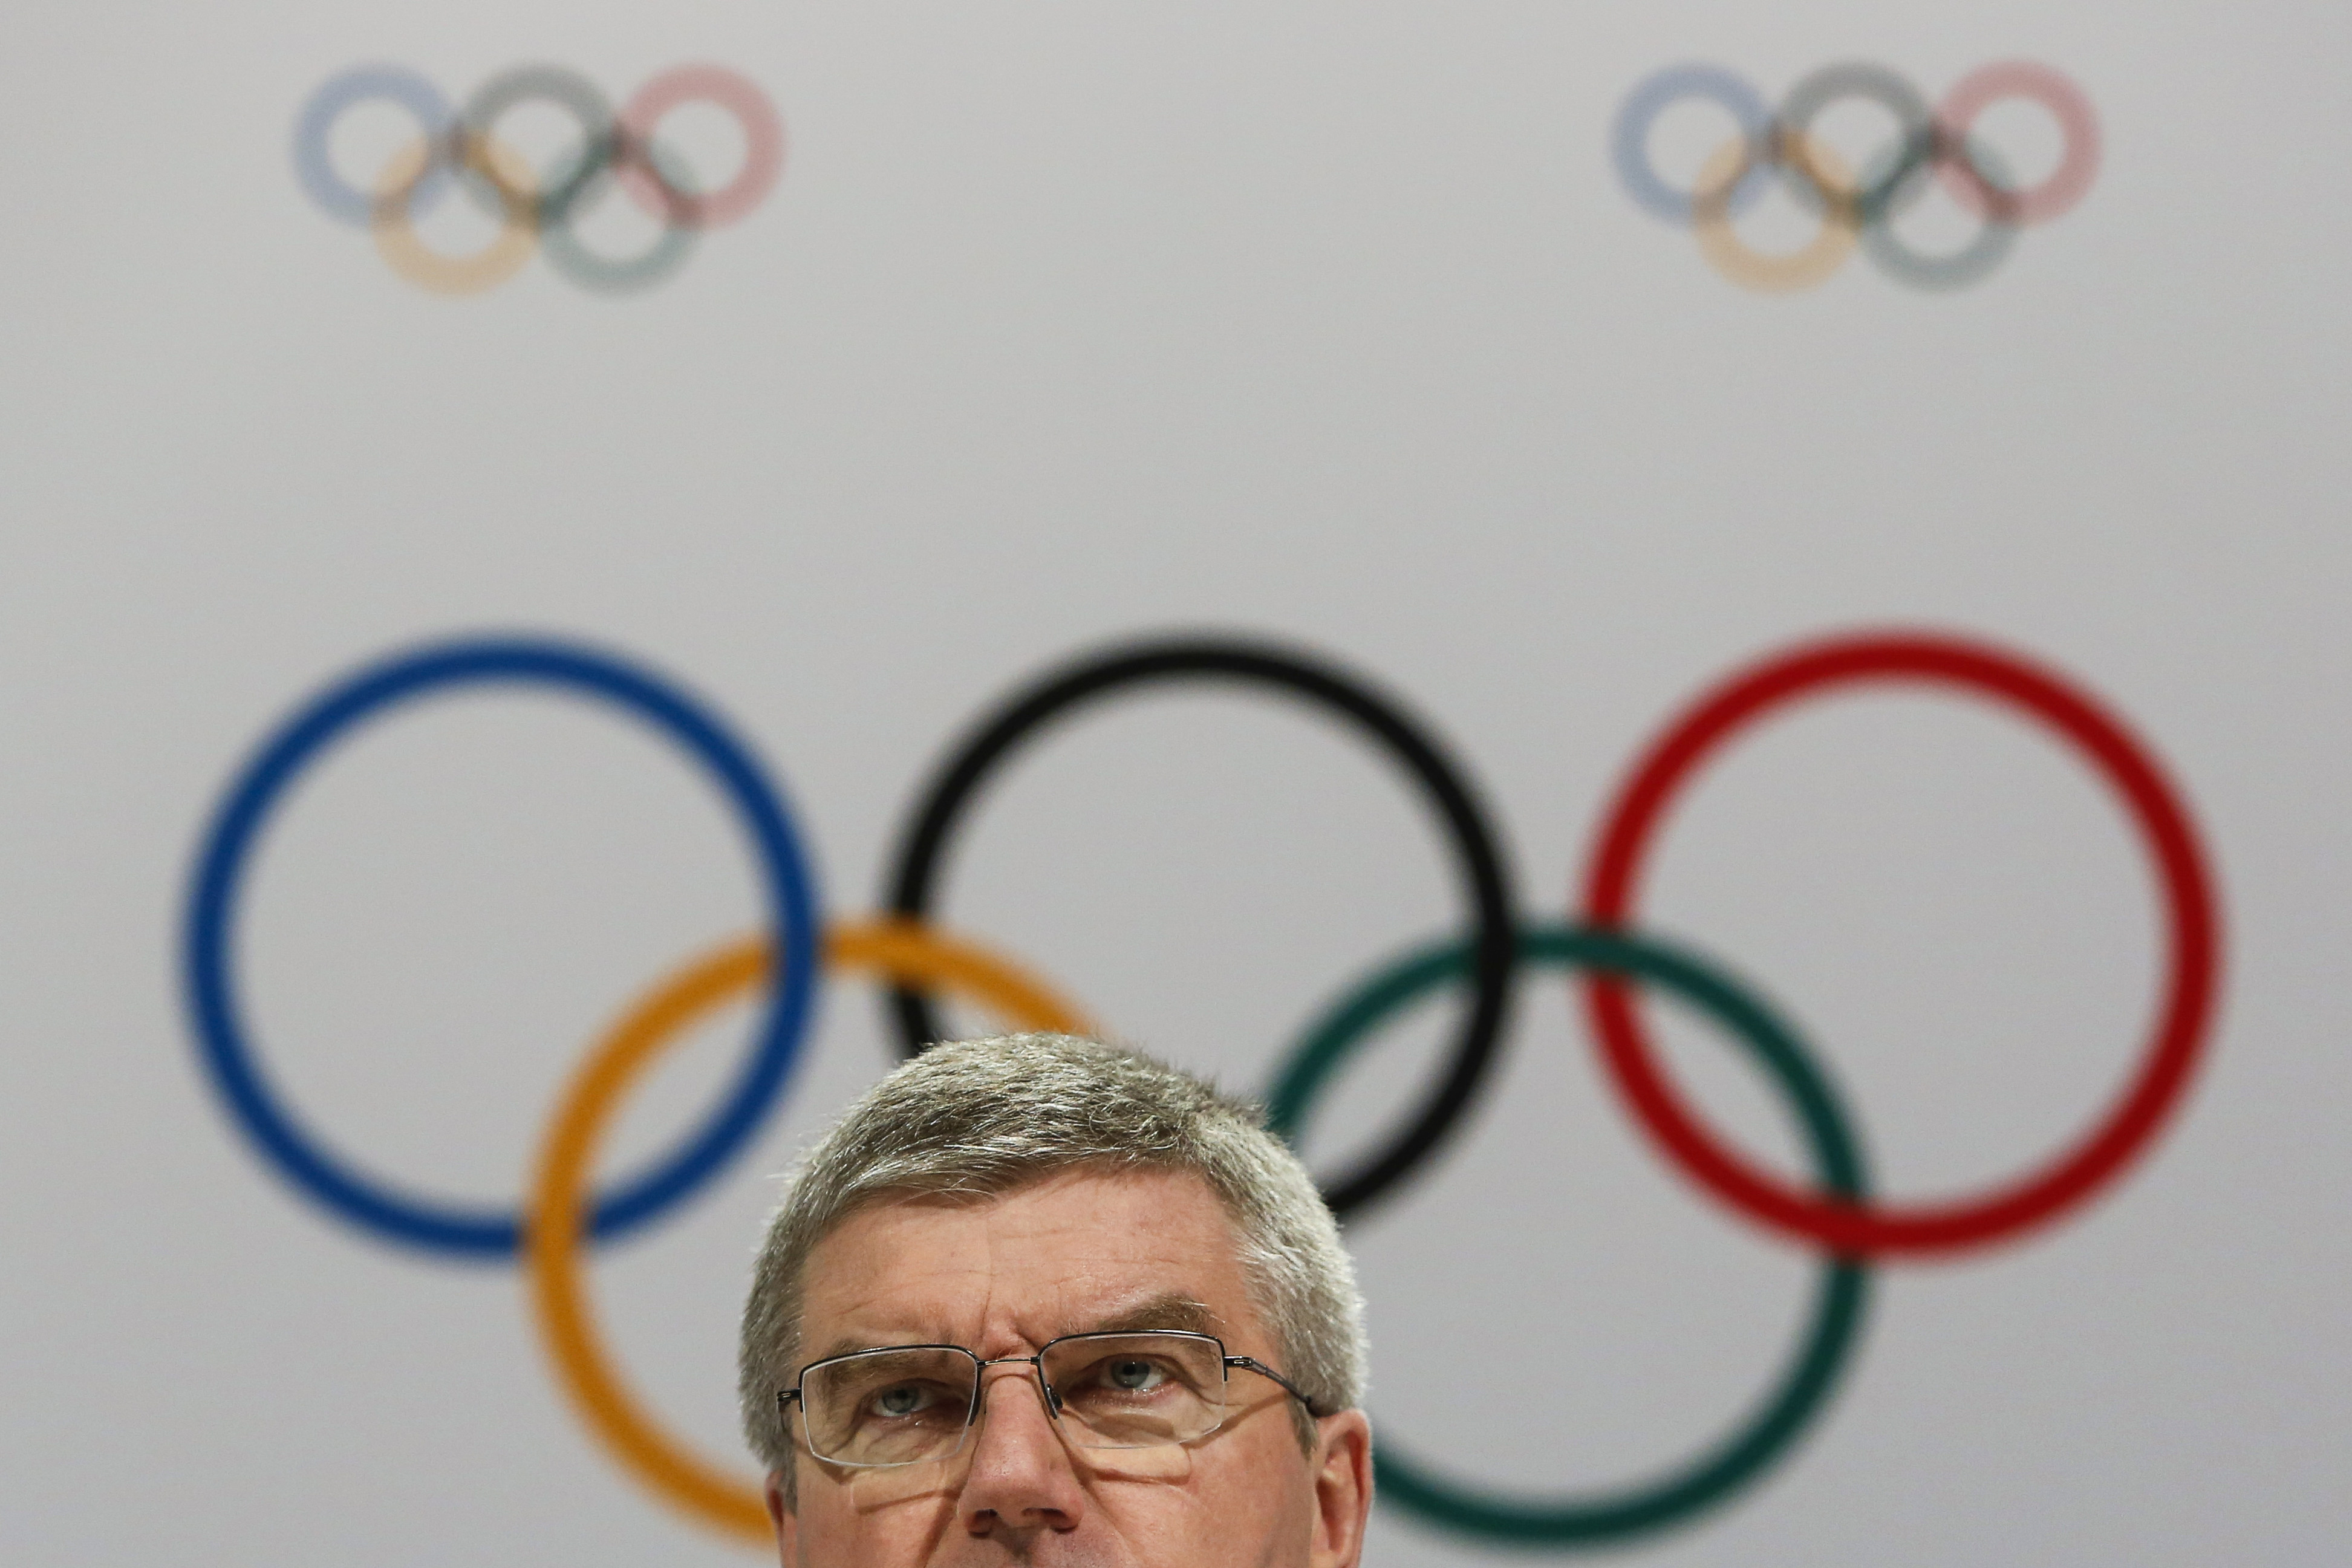 FILE - In this Aug. 3, 2015 file photo, International Olympic Committee President Thomas Bach speaks at a press conference after the 128th IOC session in Kuala Lumpur, Malaysia. After a debacle in Boston, the U.S. Olympic Committee turned to Los Angeles t